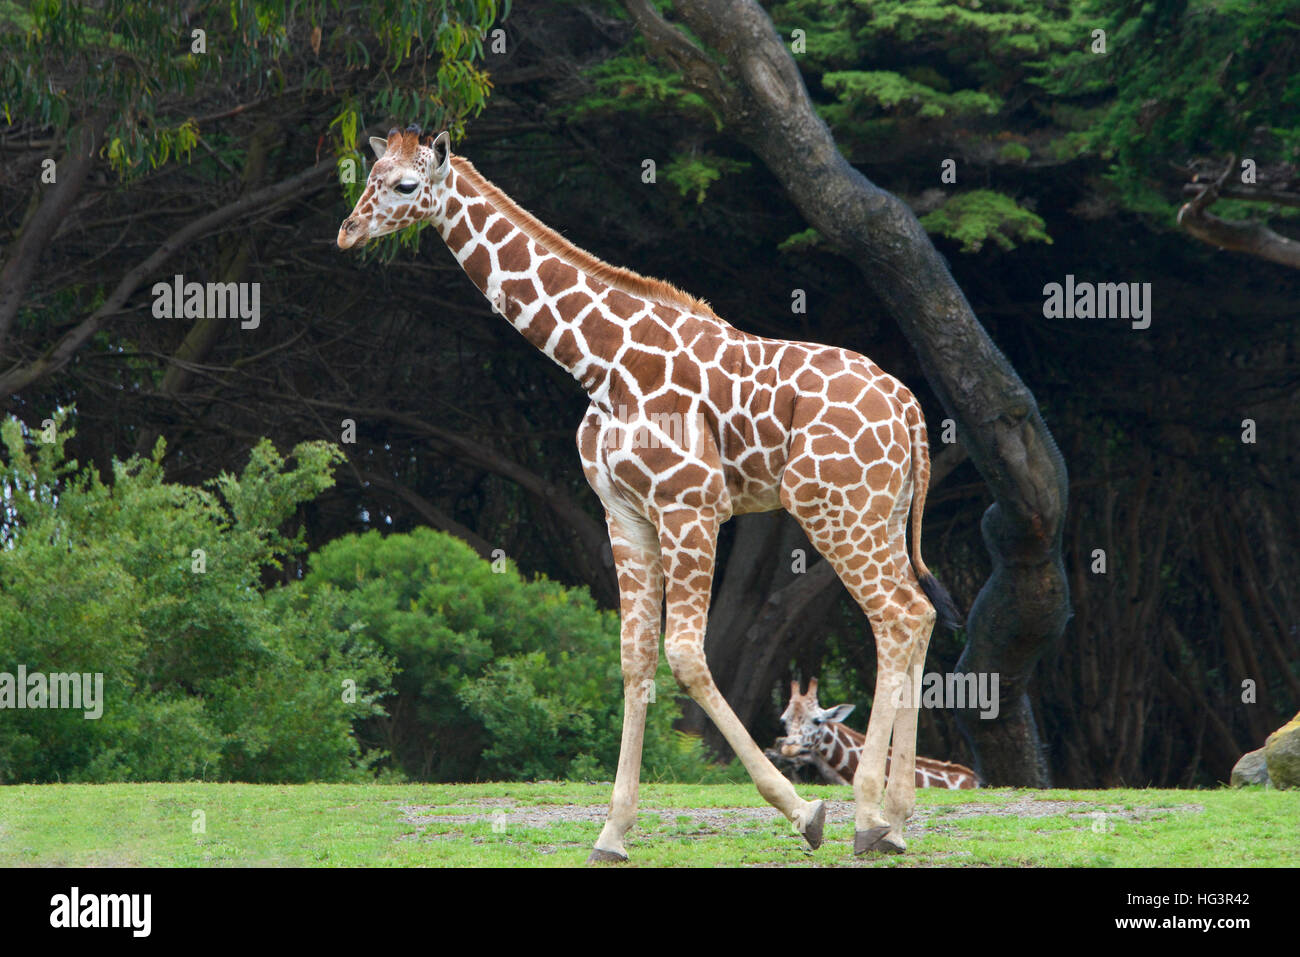 giraffe walking on grass with bushes and tall trees in background, another giraffe in the distance seen between - Stock Image